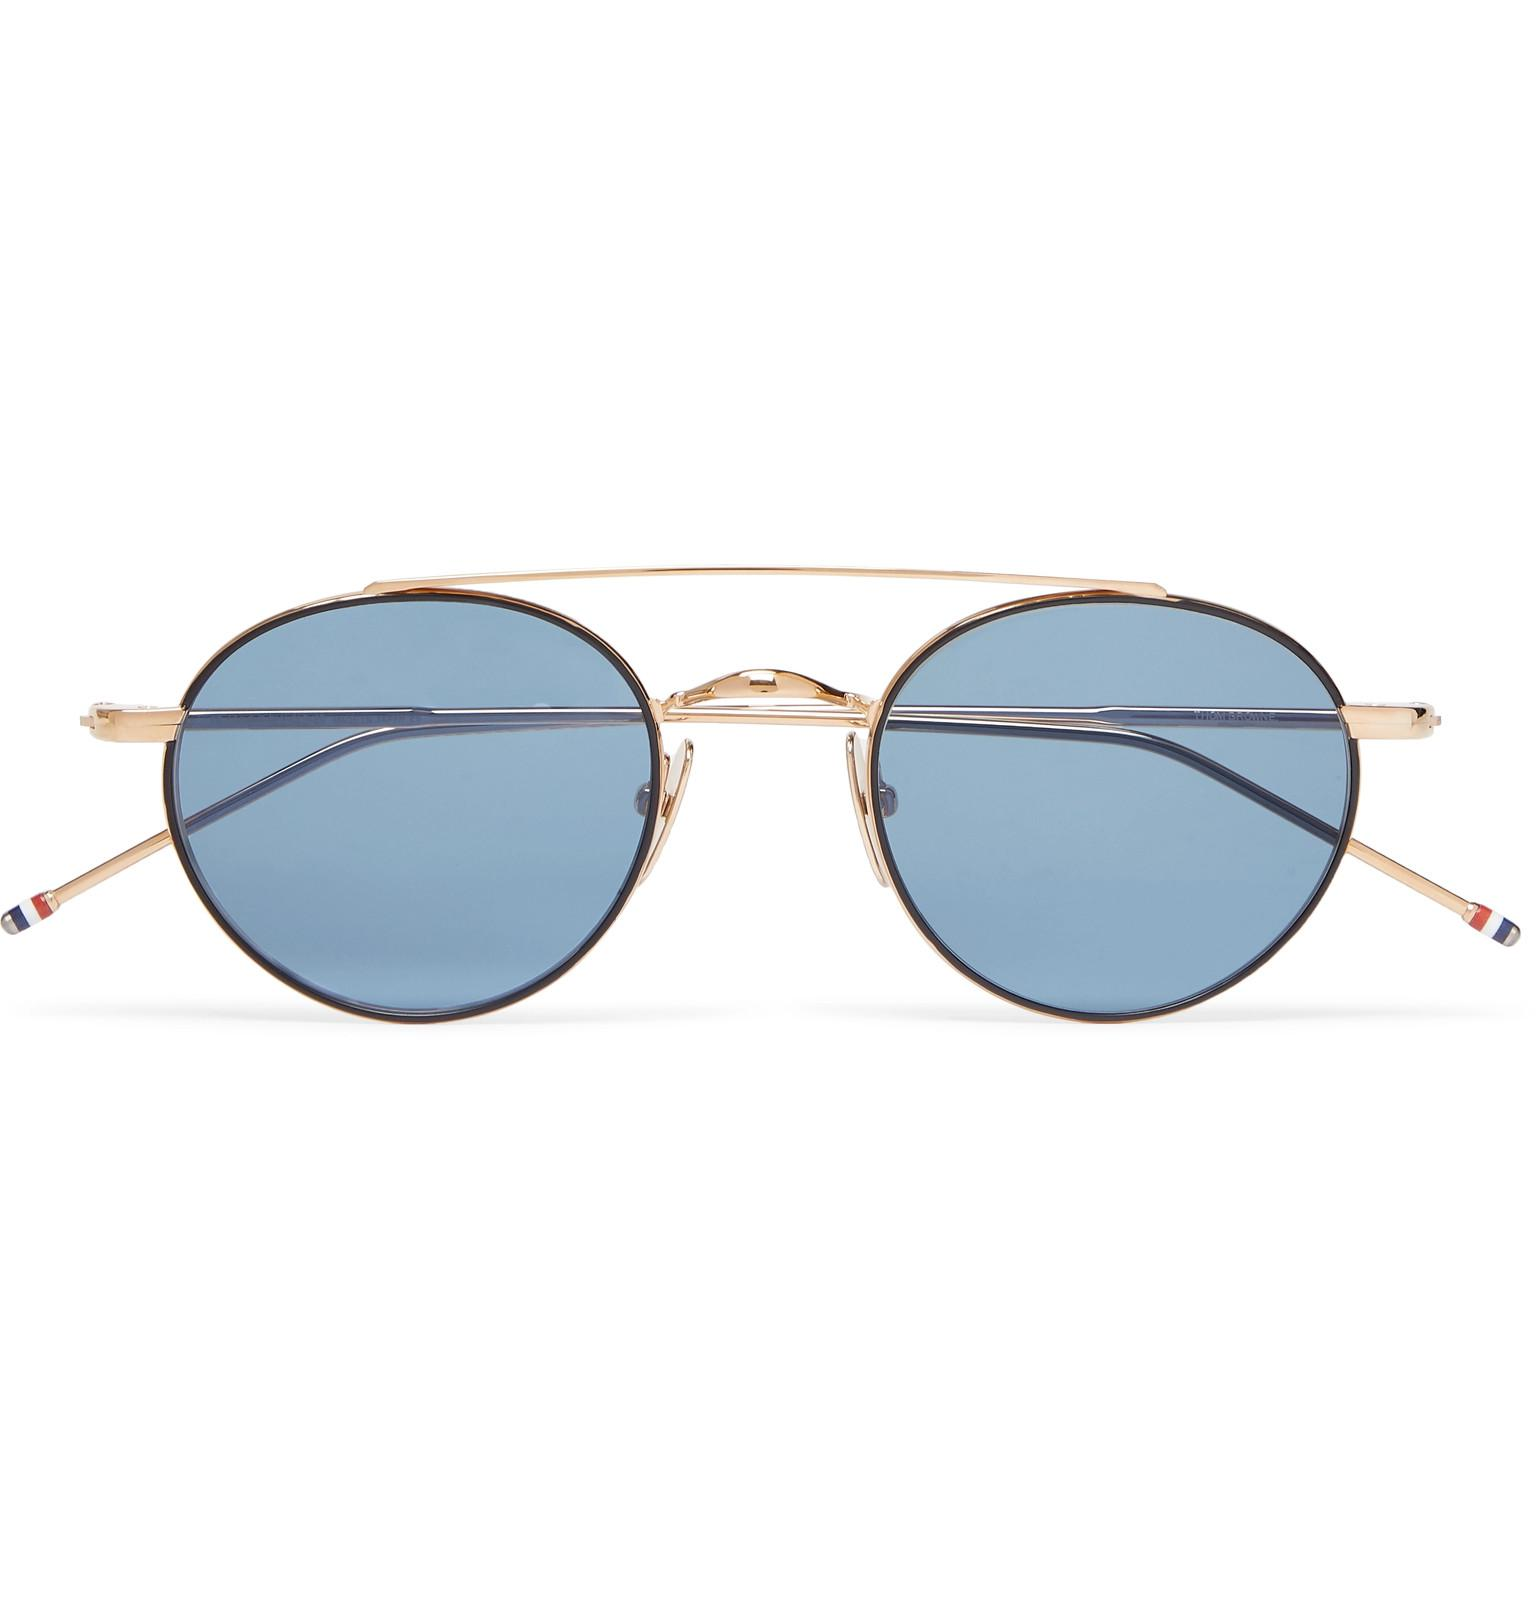 d811fbadea44 Thom Browne Round-frame Gold-tone Sunglasses in Metallic for Men - Lyst